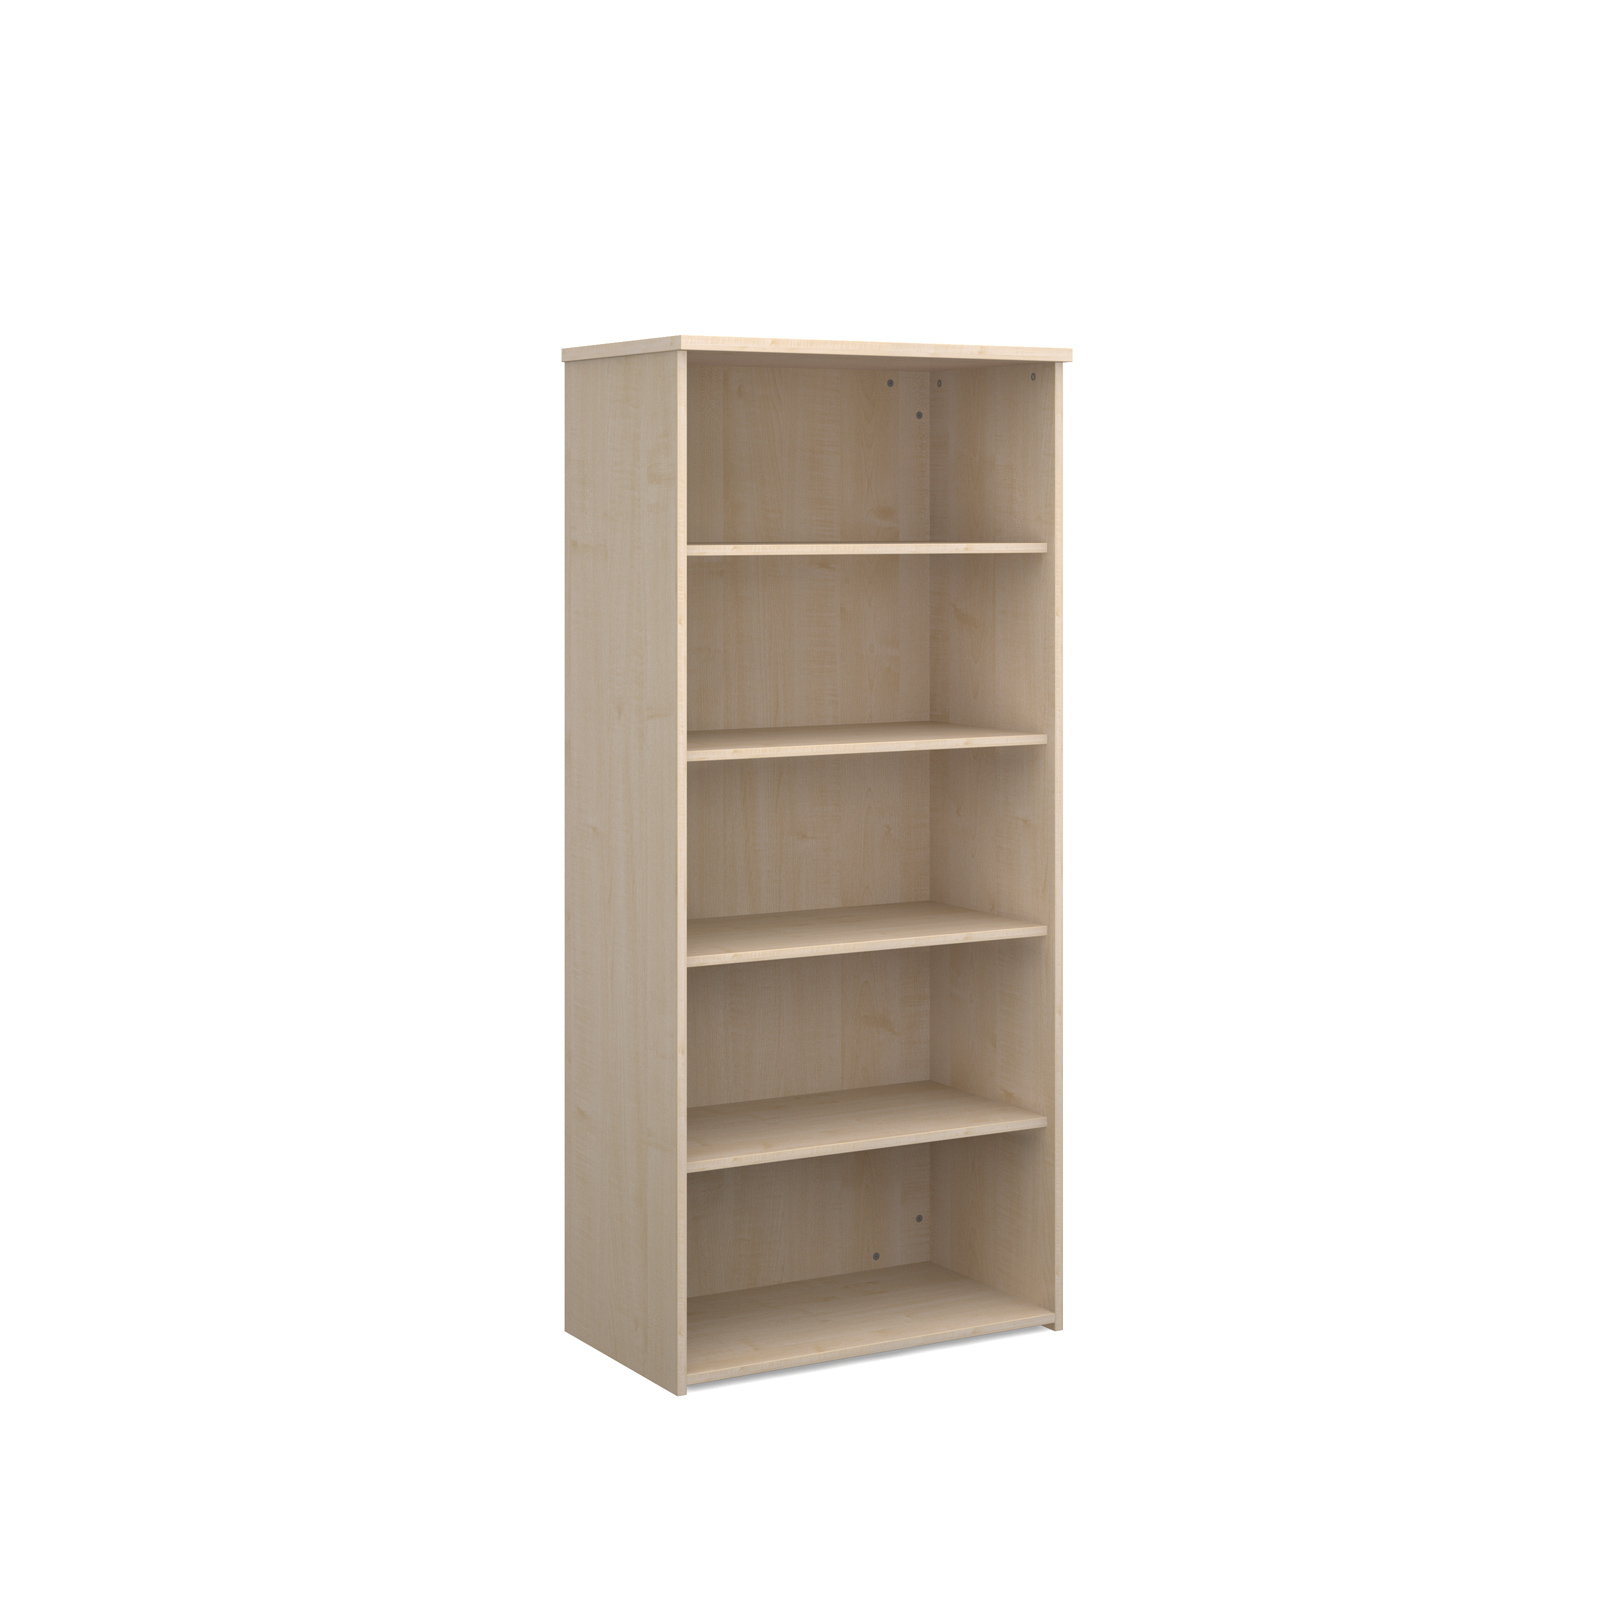 Over 1200mm High Universal bookcase 1790mm high with 4 shelves - maple